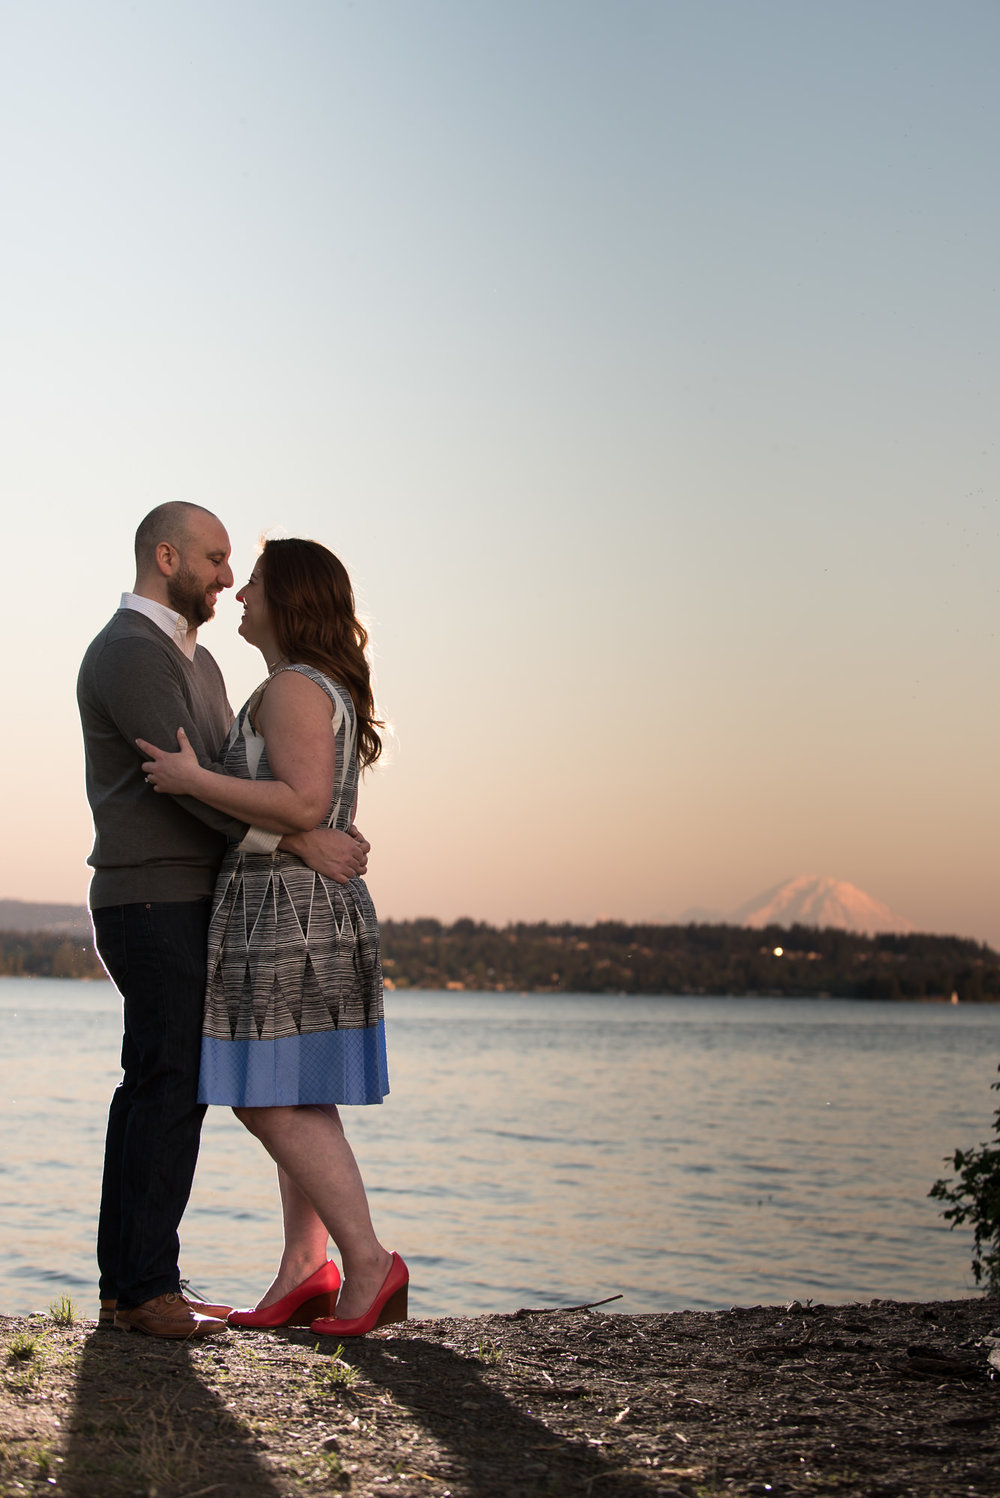 dreamy sunset light at this Magnuson Park engagement photo session with Vicki and Mike